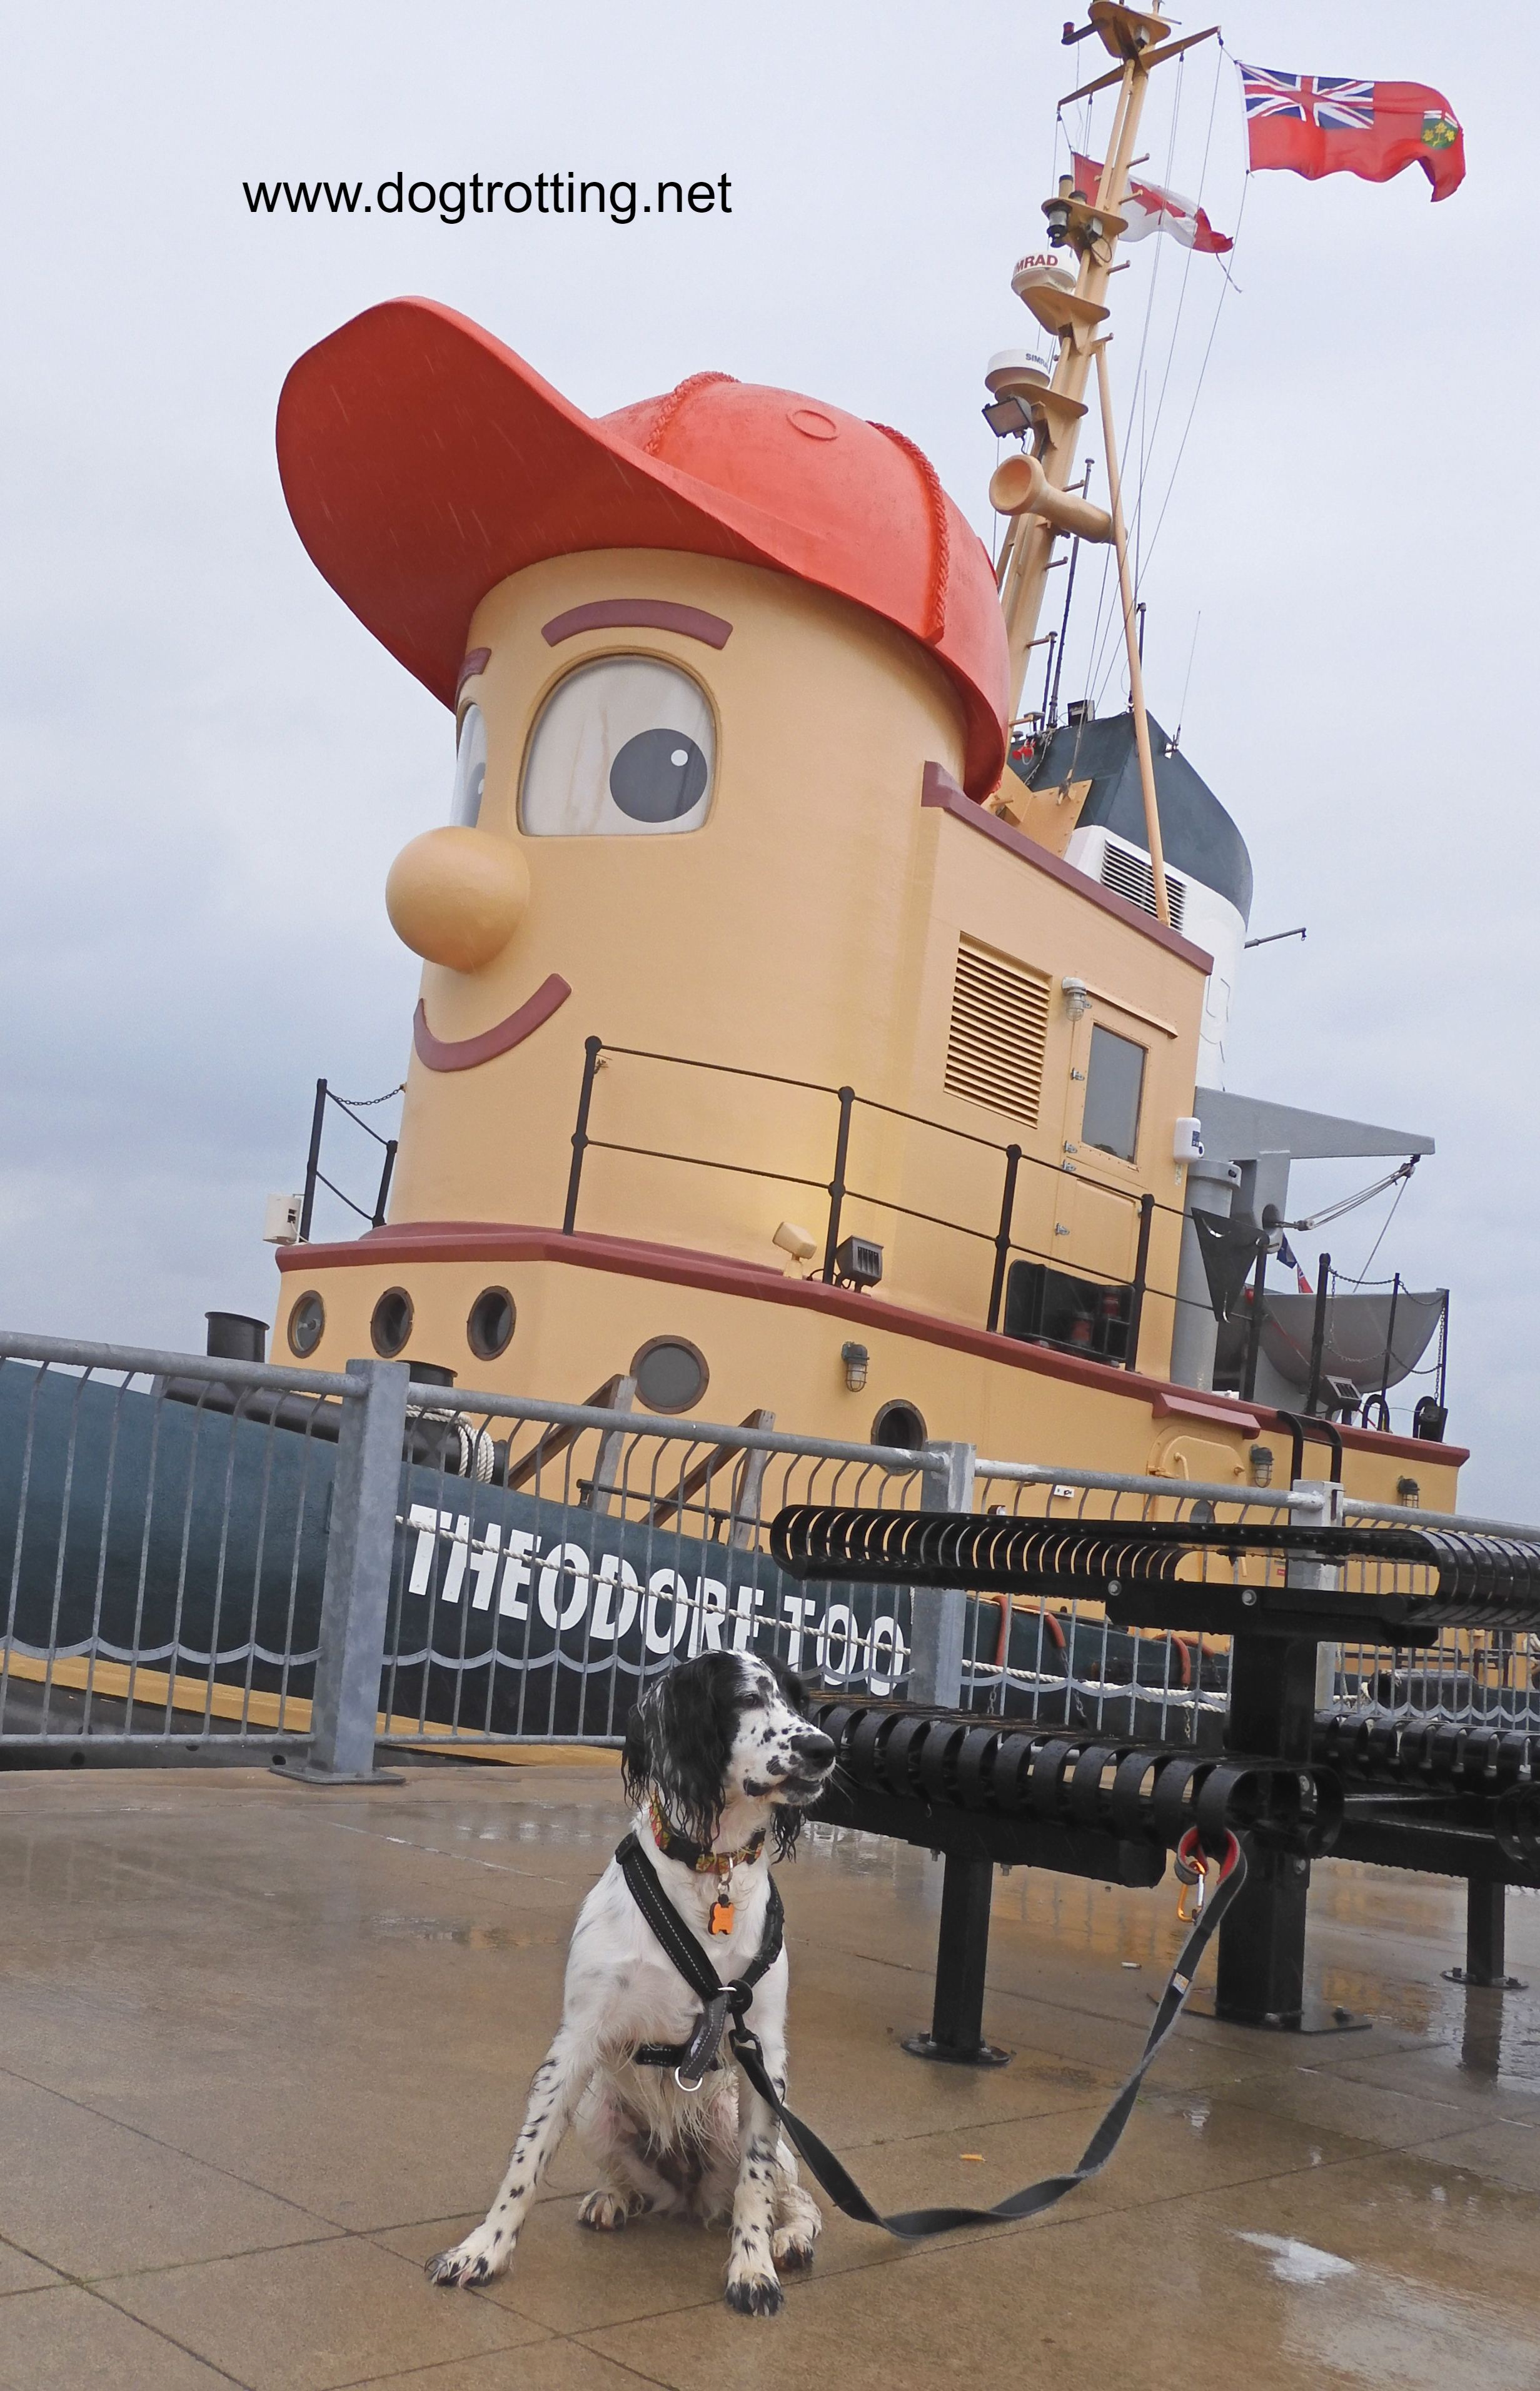 A Tugboat designed with a face and red baseball cap to resemble Theodore Too Tugboat TV show character with black and white dog from dogtrotting.net blog